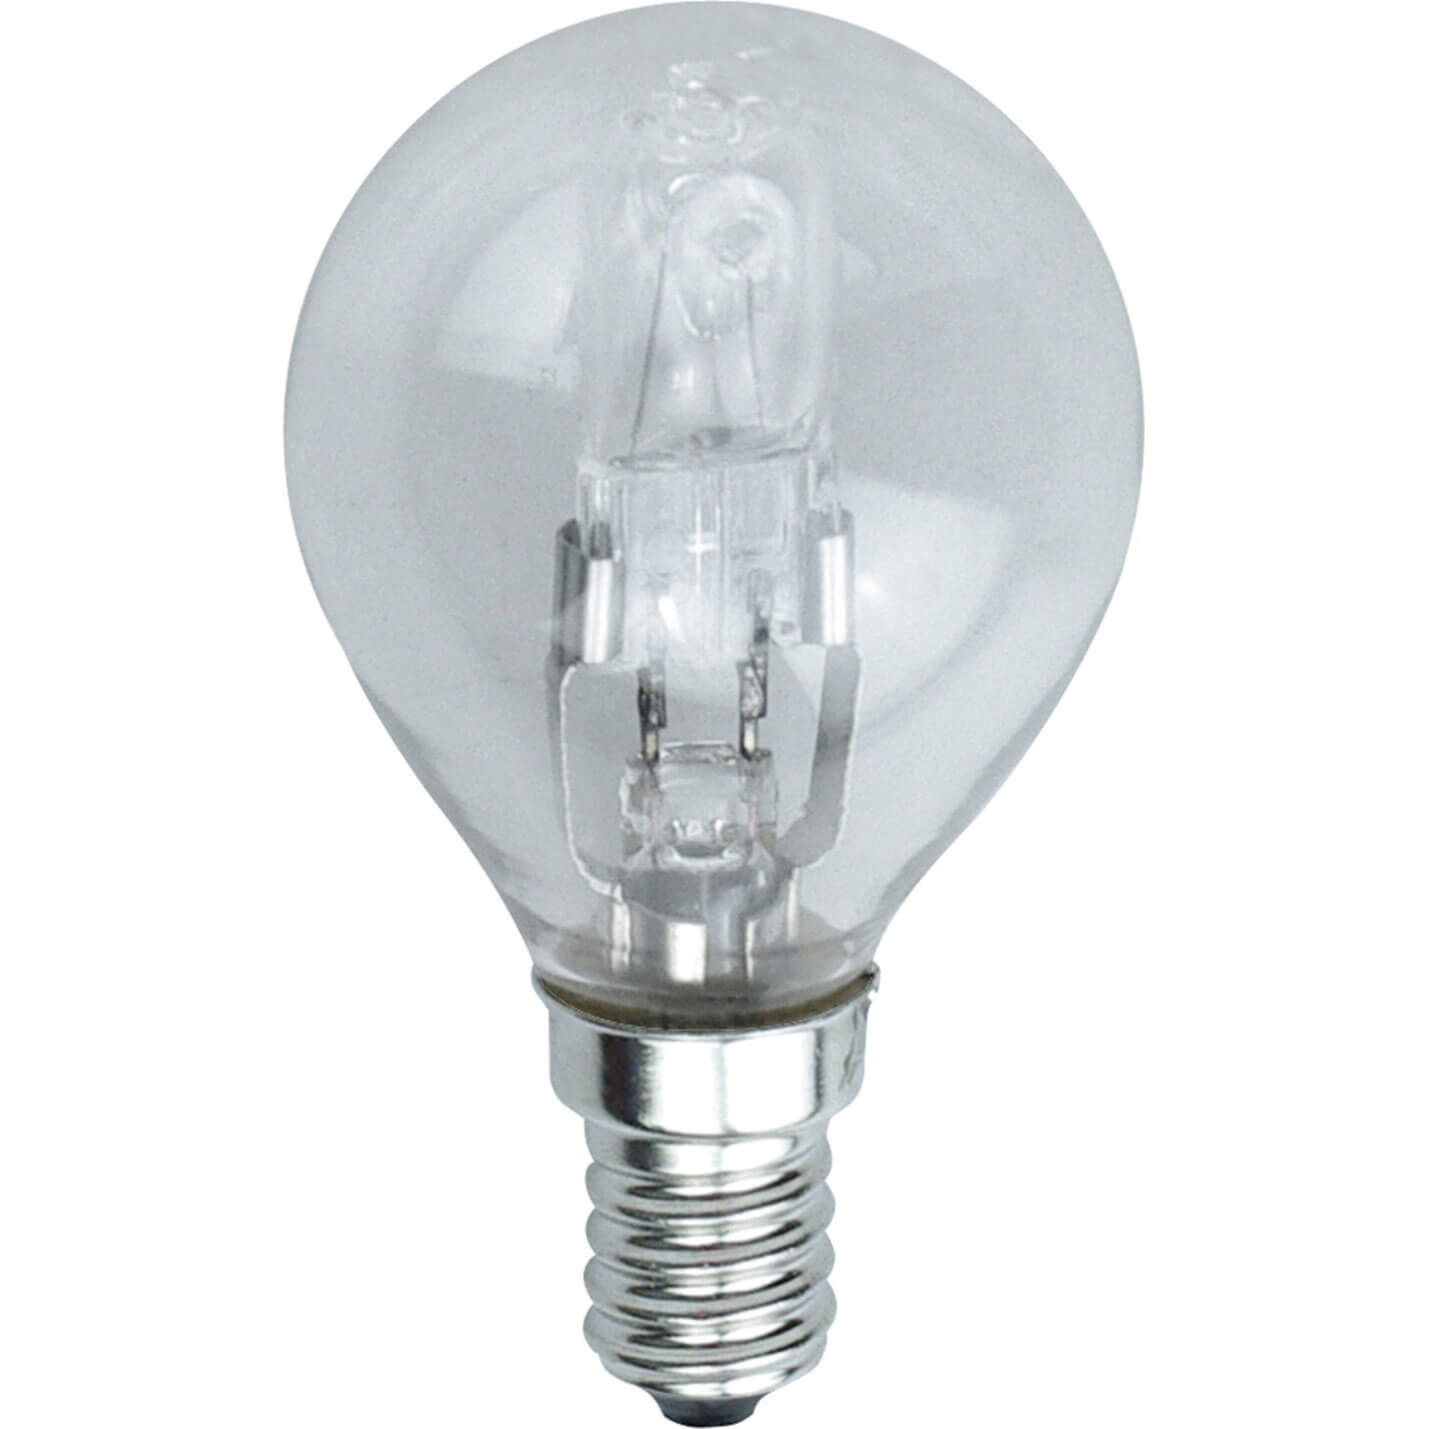 Image of Eveready Energy Save G45 Halogen Golf Bulb SES / E14 Small Edison Screw 28w